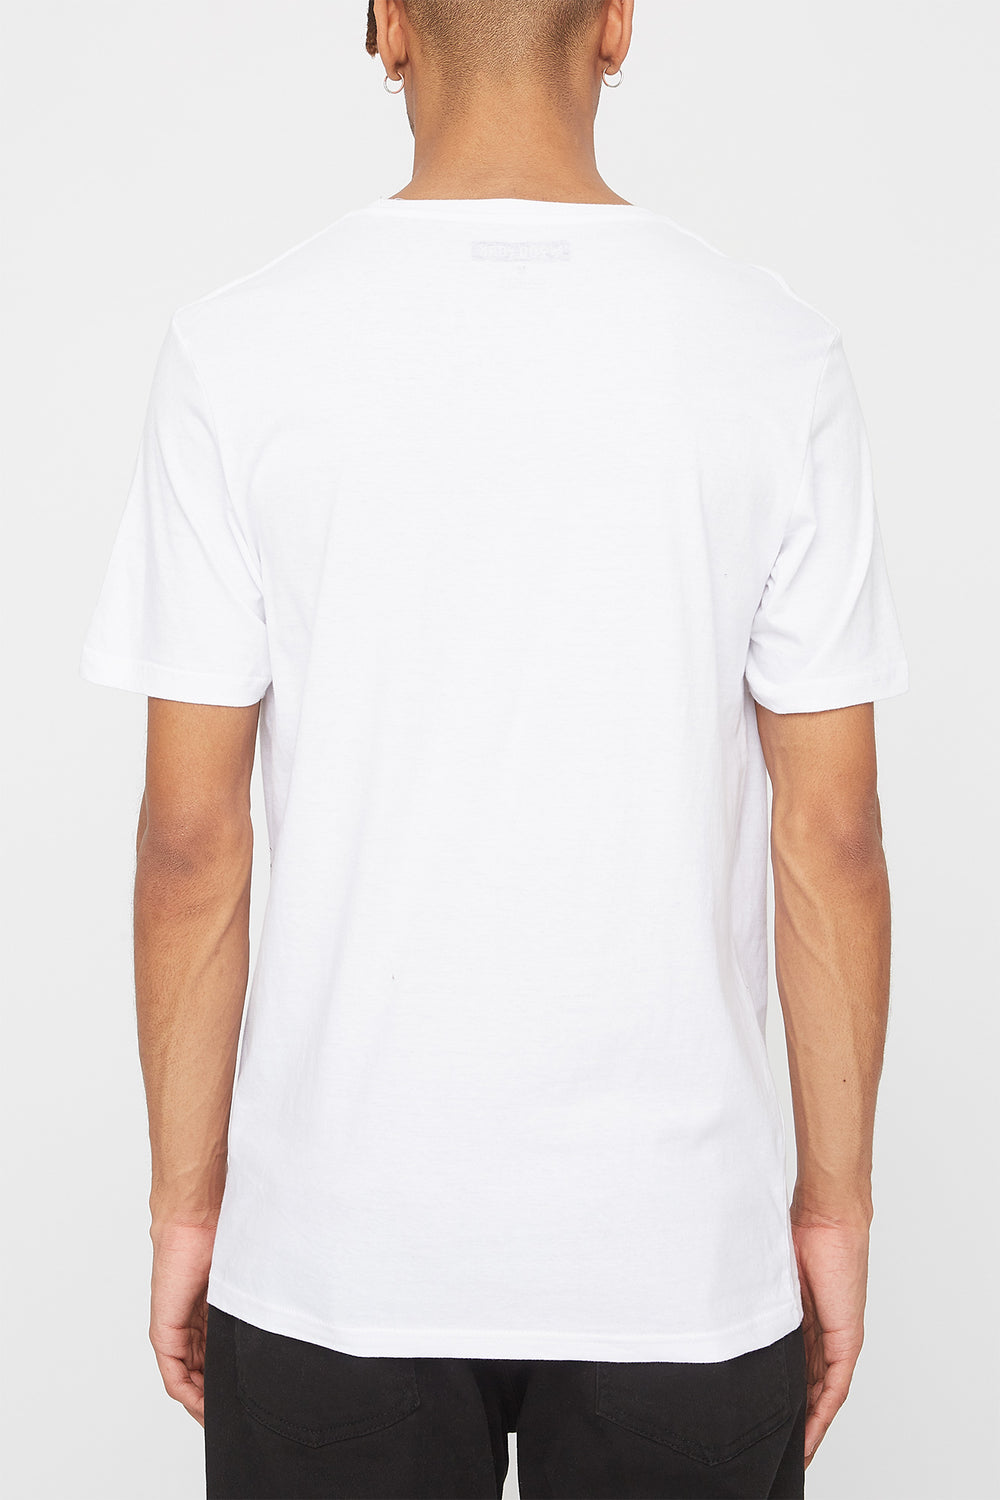 Zoo York Mens Embroidered Logo Pocket T-Shirt White